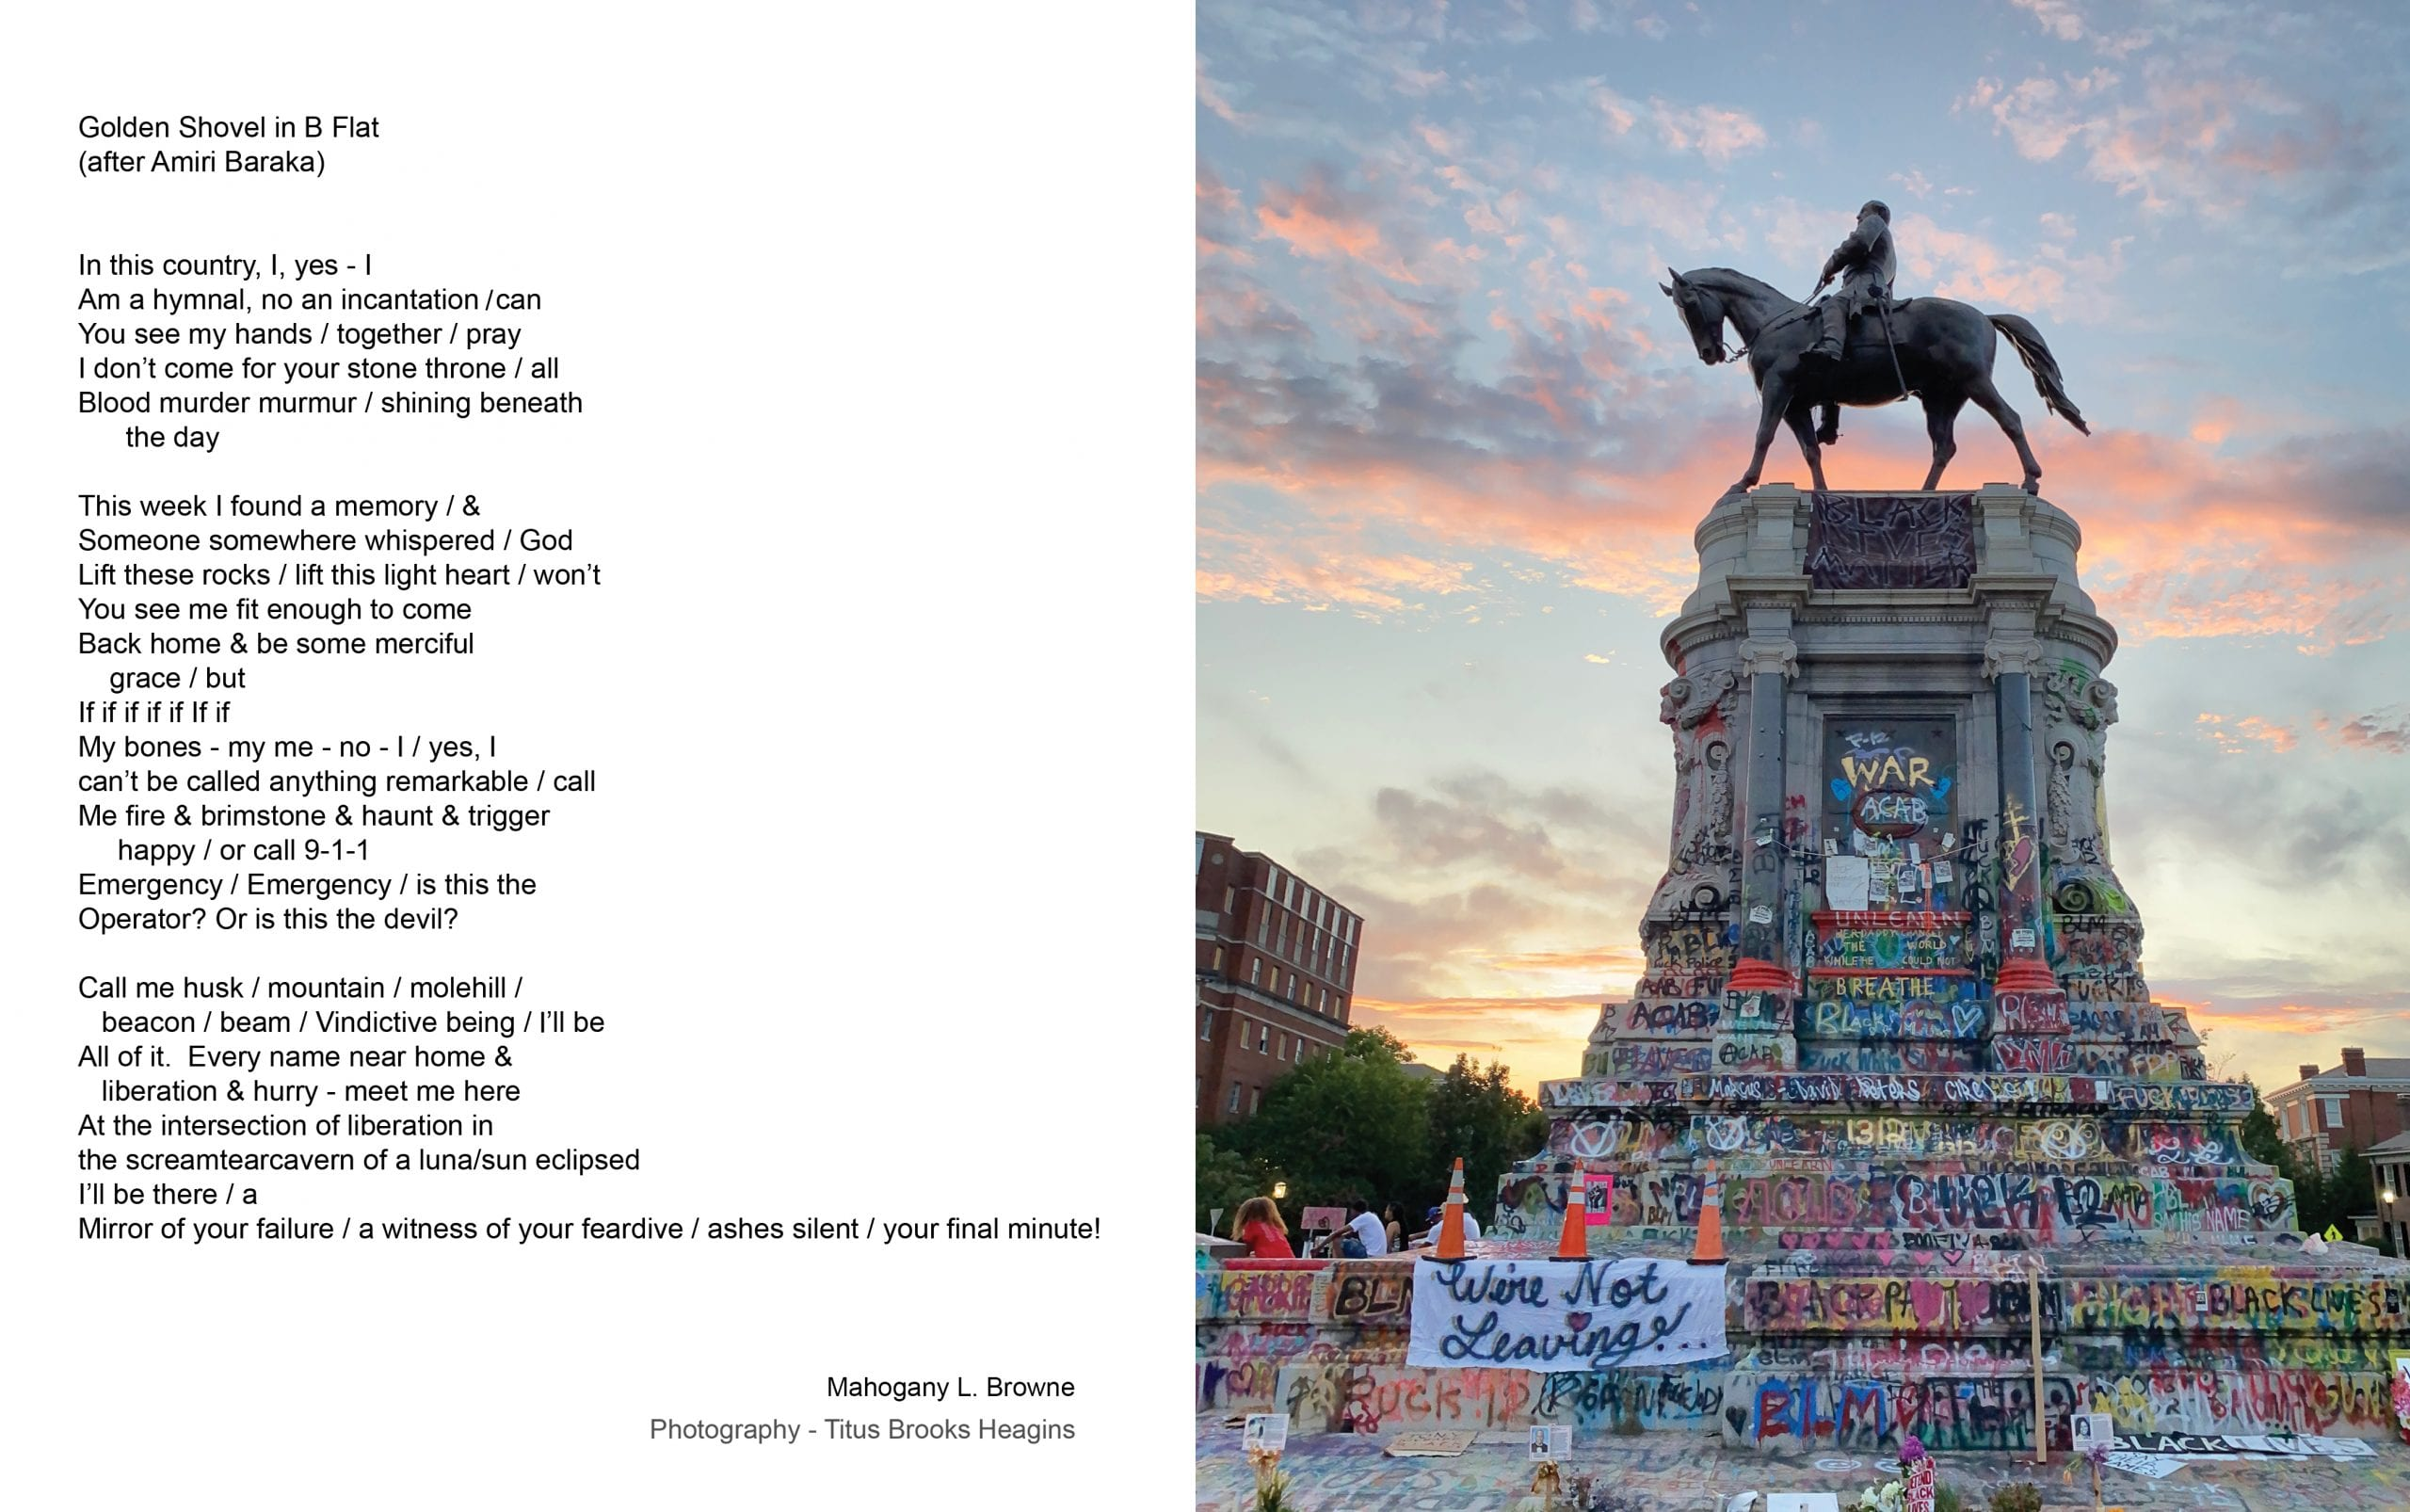 A poem appears on the left; on the right, color photograph of a Confederate monument at dusk. The monument has been painted over with colorful graffiti in protest against its presence and in favor of the Black Lives Matter movement